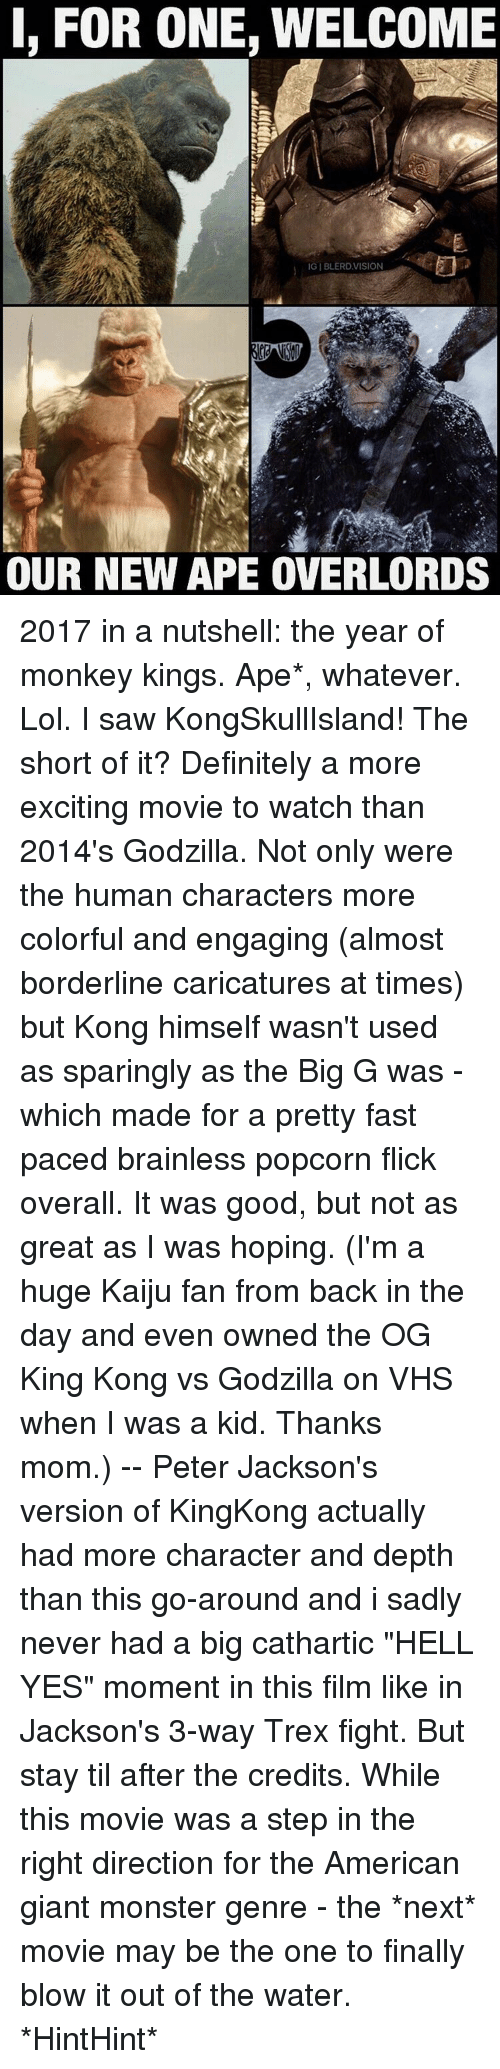 """kaiju: I, FOR ONE, WELCOME  IGIBLERDVISION  OUR NEW APE OVERLORDS 2017 in a nutshell: the year of monkey kings. Ape*, whatever. Lol. I saw KongSkullIsland! The short of it? Definitely a more exciting movie to watch than 2014's Godzilla. Not only were the human characters more colorful and engaging (almost borderline caricatures at times) but Kong himself wasn't used as sparingly as the Big G was - which made for a pretty fast paced brainless popcorn flick overall. It was good, but not as great as I was hoping. (I'm a huge Kaiju fan from back in the day and even owned the OG King Kong vs Godzilla on VHS when I was a kid. Thanks mom.) -- Peter Jackson's version of KingKong actually had more character and depth than this go-around and i sadly never had a big cathartic """"HELL YES"""" moment in this film like in Jackson's 3-way Trex fight. But stay til after the credits. While this movie was a step in the right direction for the American giant monster genre - the *next* movie may be the one to finally blow it out of the water. *HintHint*"""